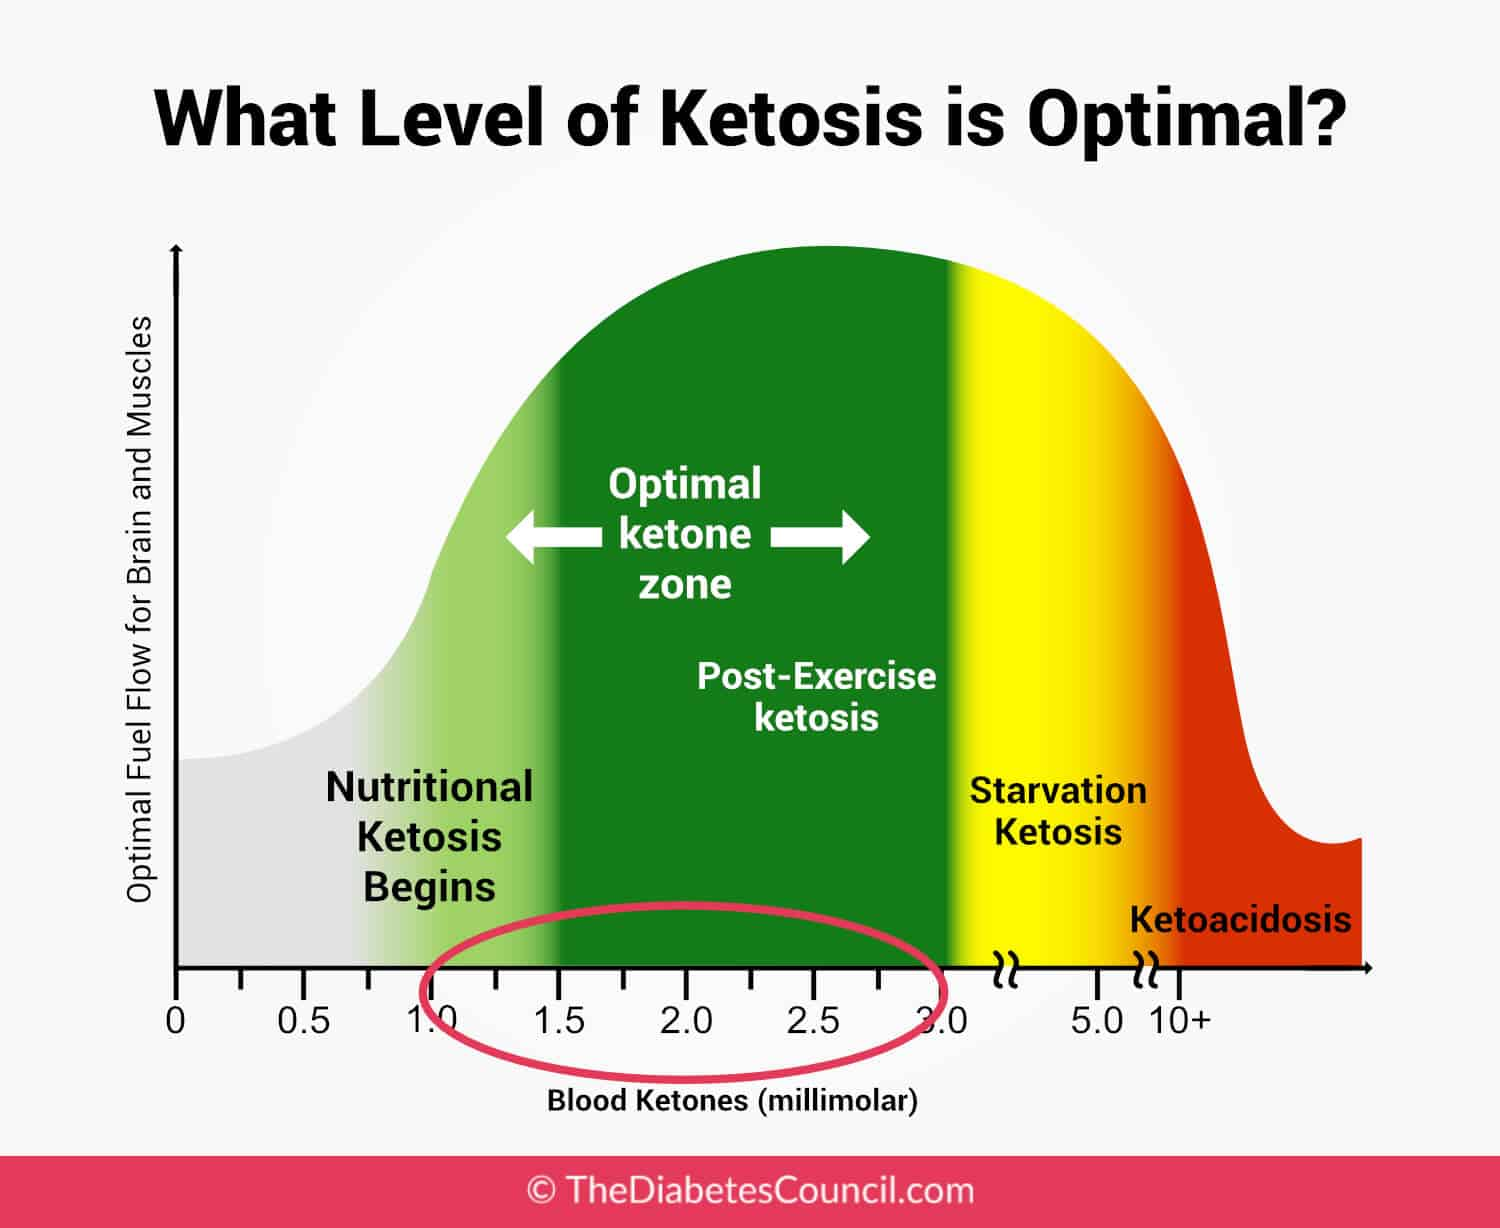 Nutritional Ketosis Ketone Levels | All Articles about ...